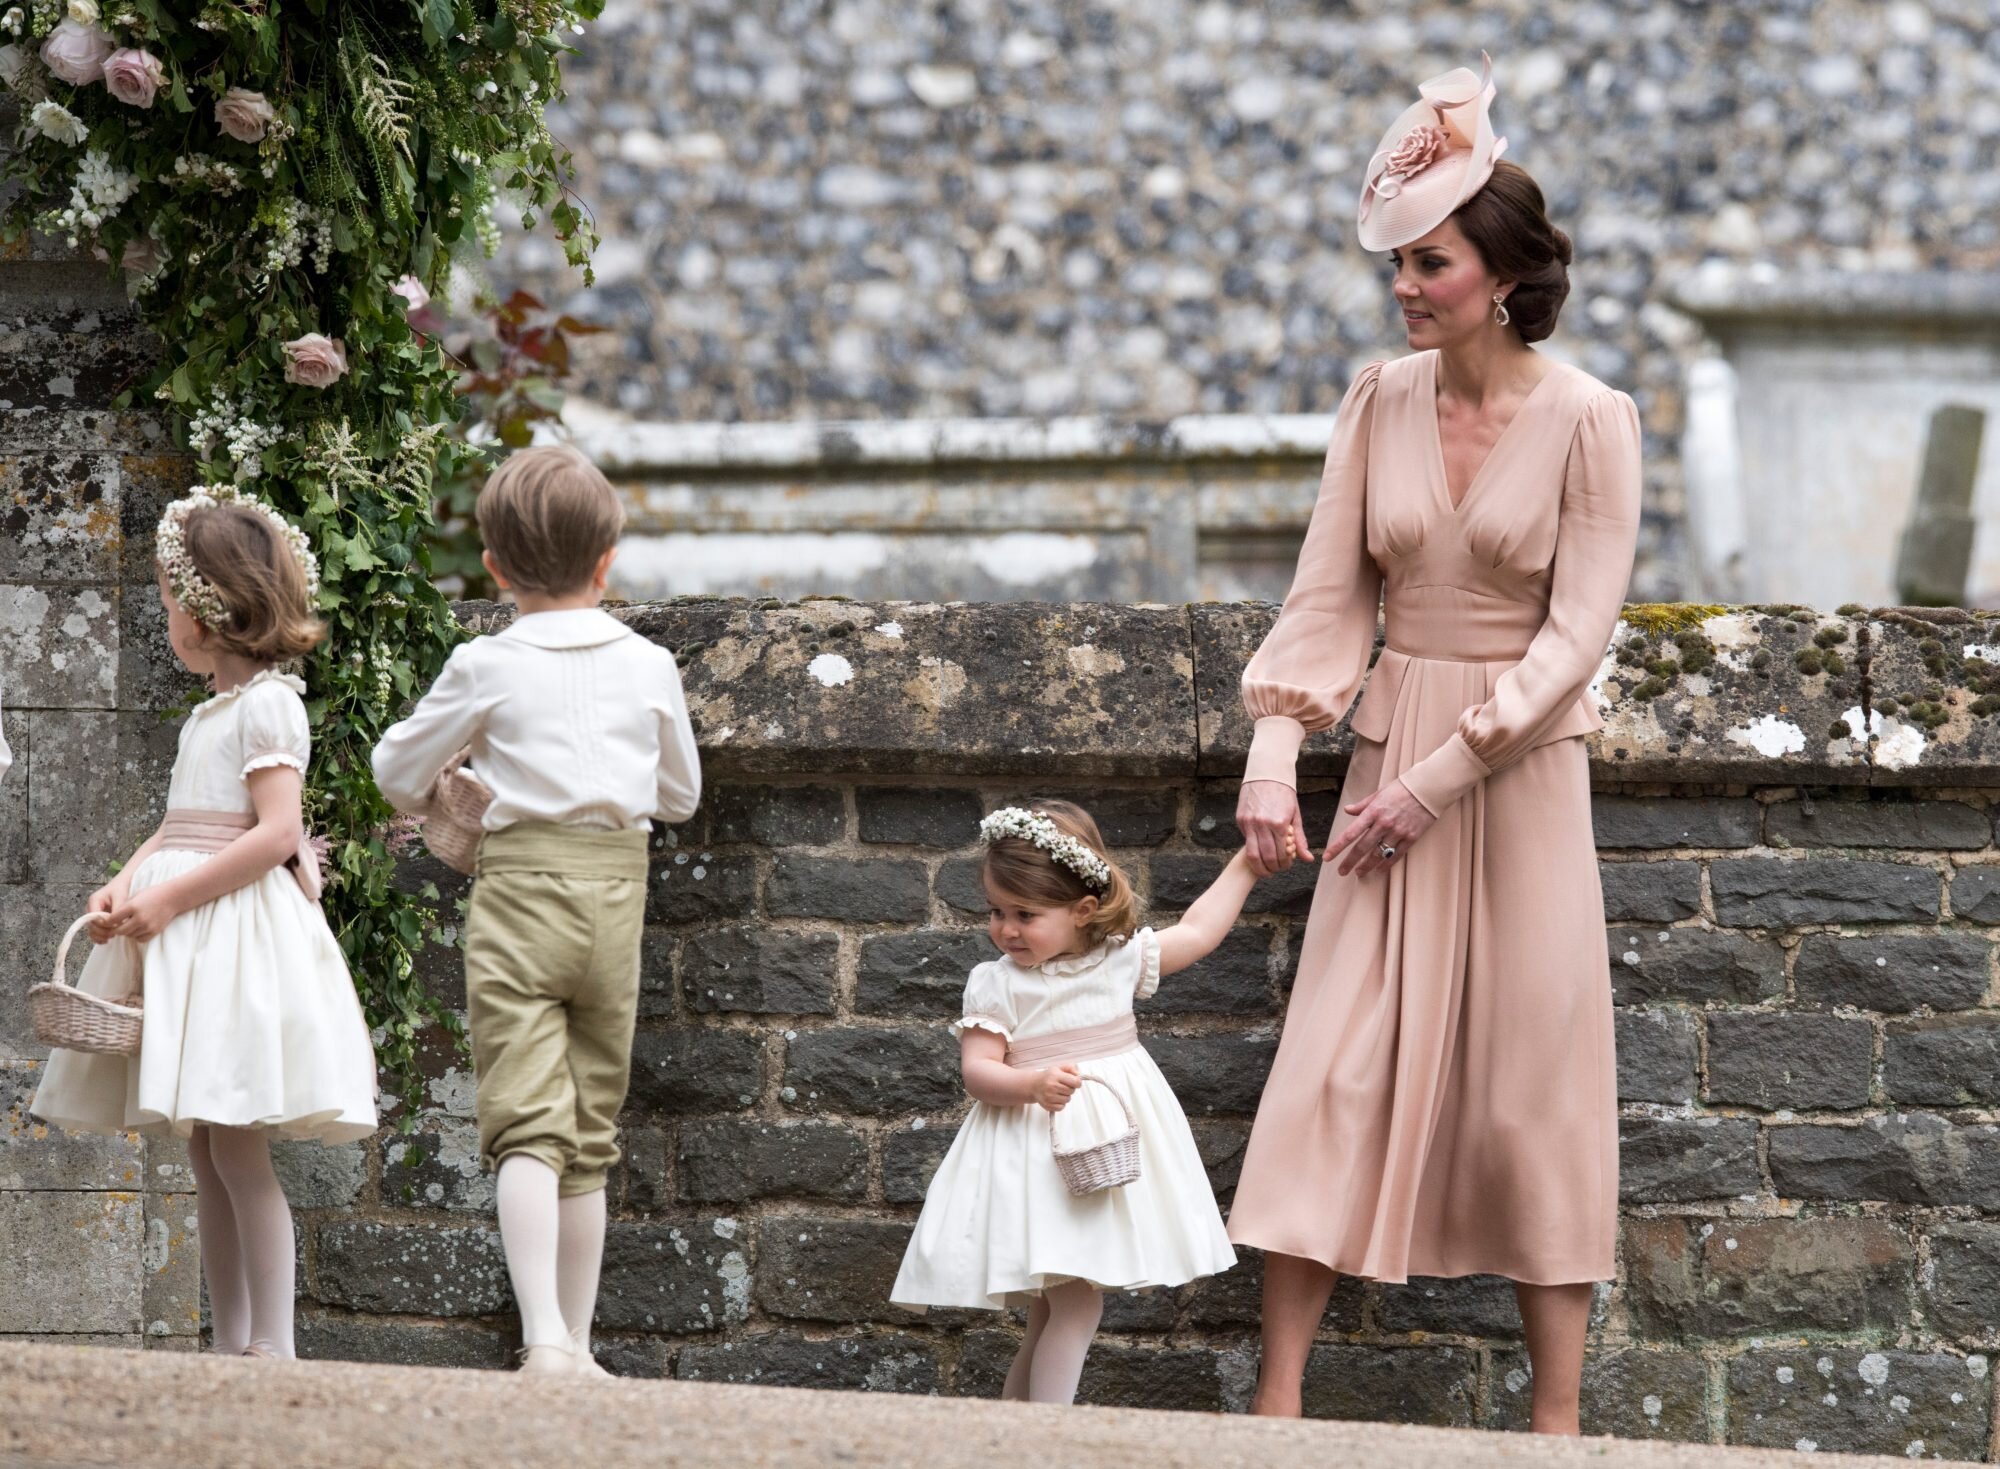 kate s dress for pippa s wedding made headlines for a specific etiquette reason southerners have always known southern living kate s dress for pippa s wedding made